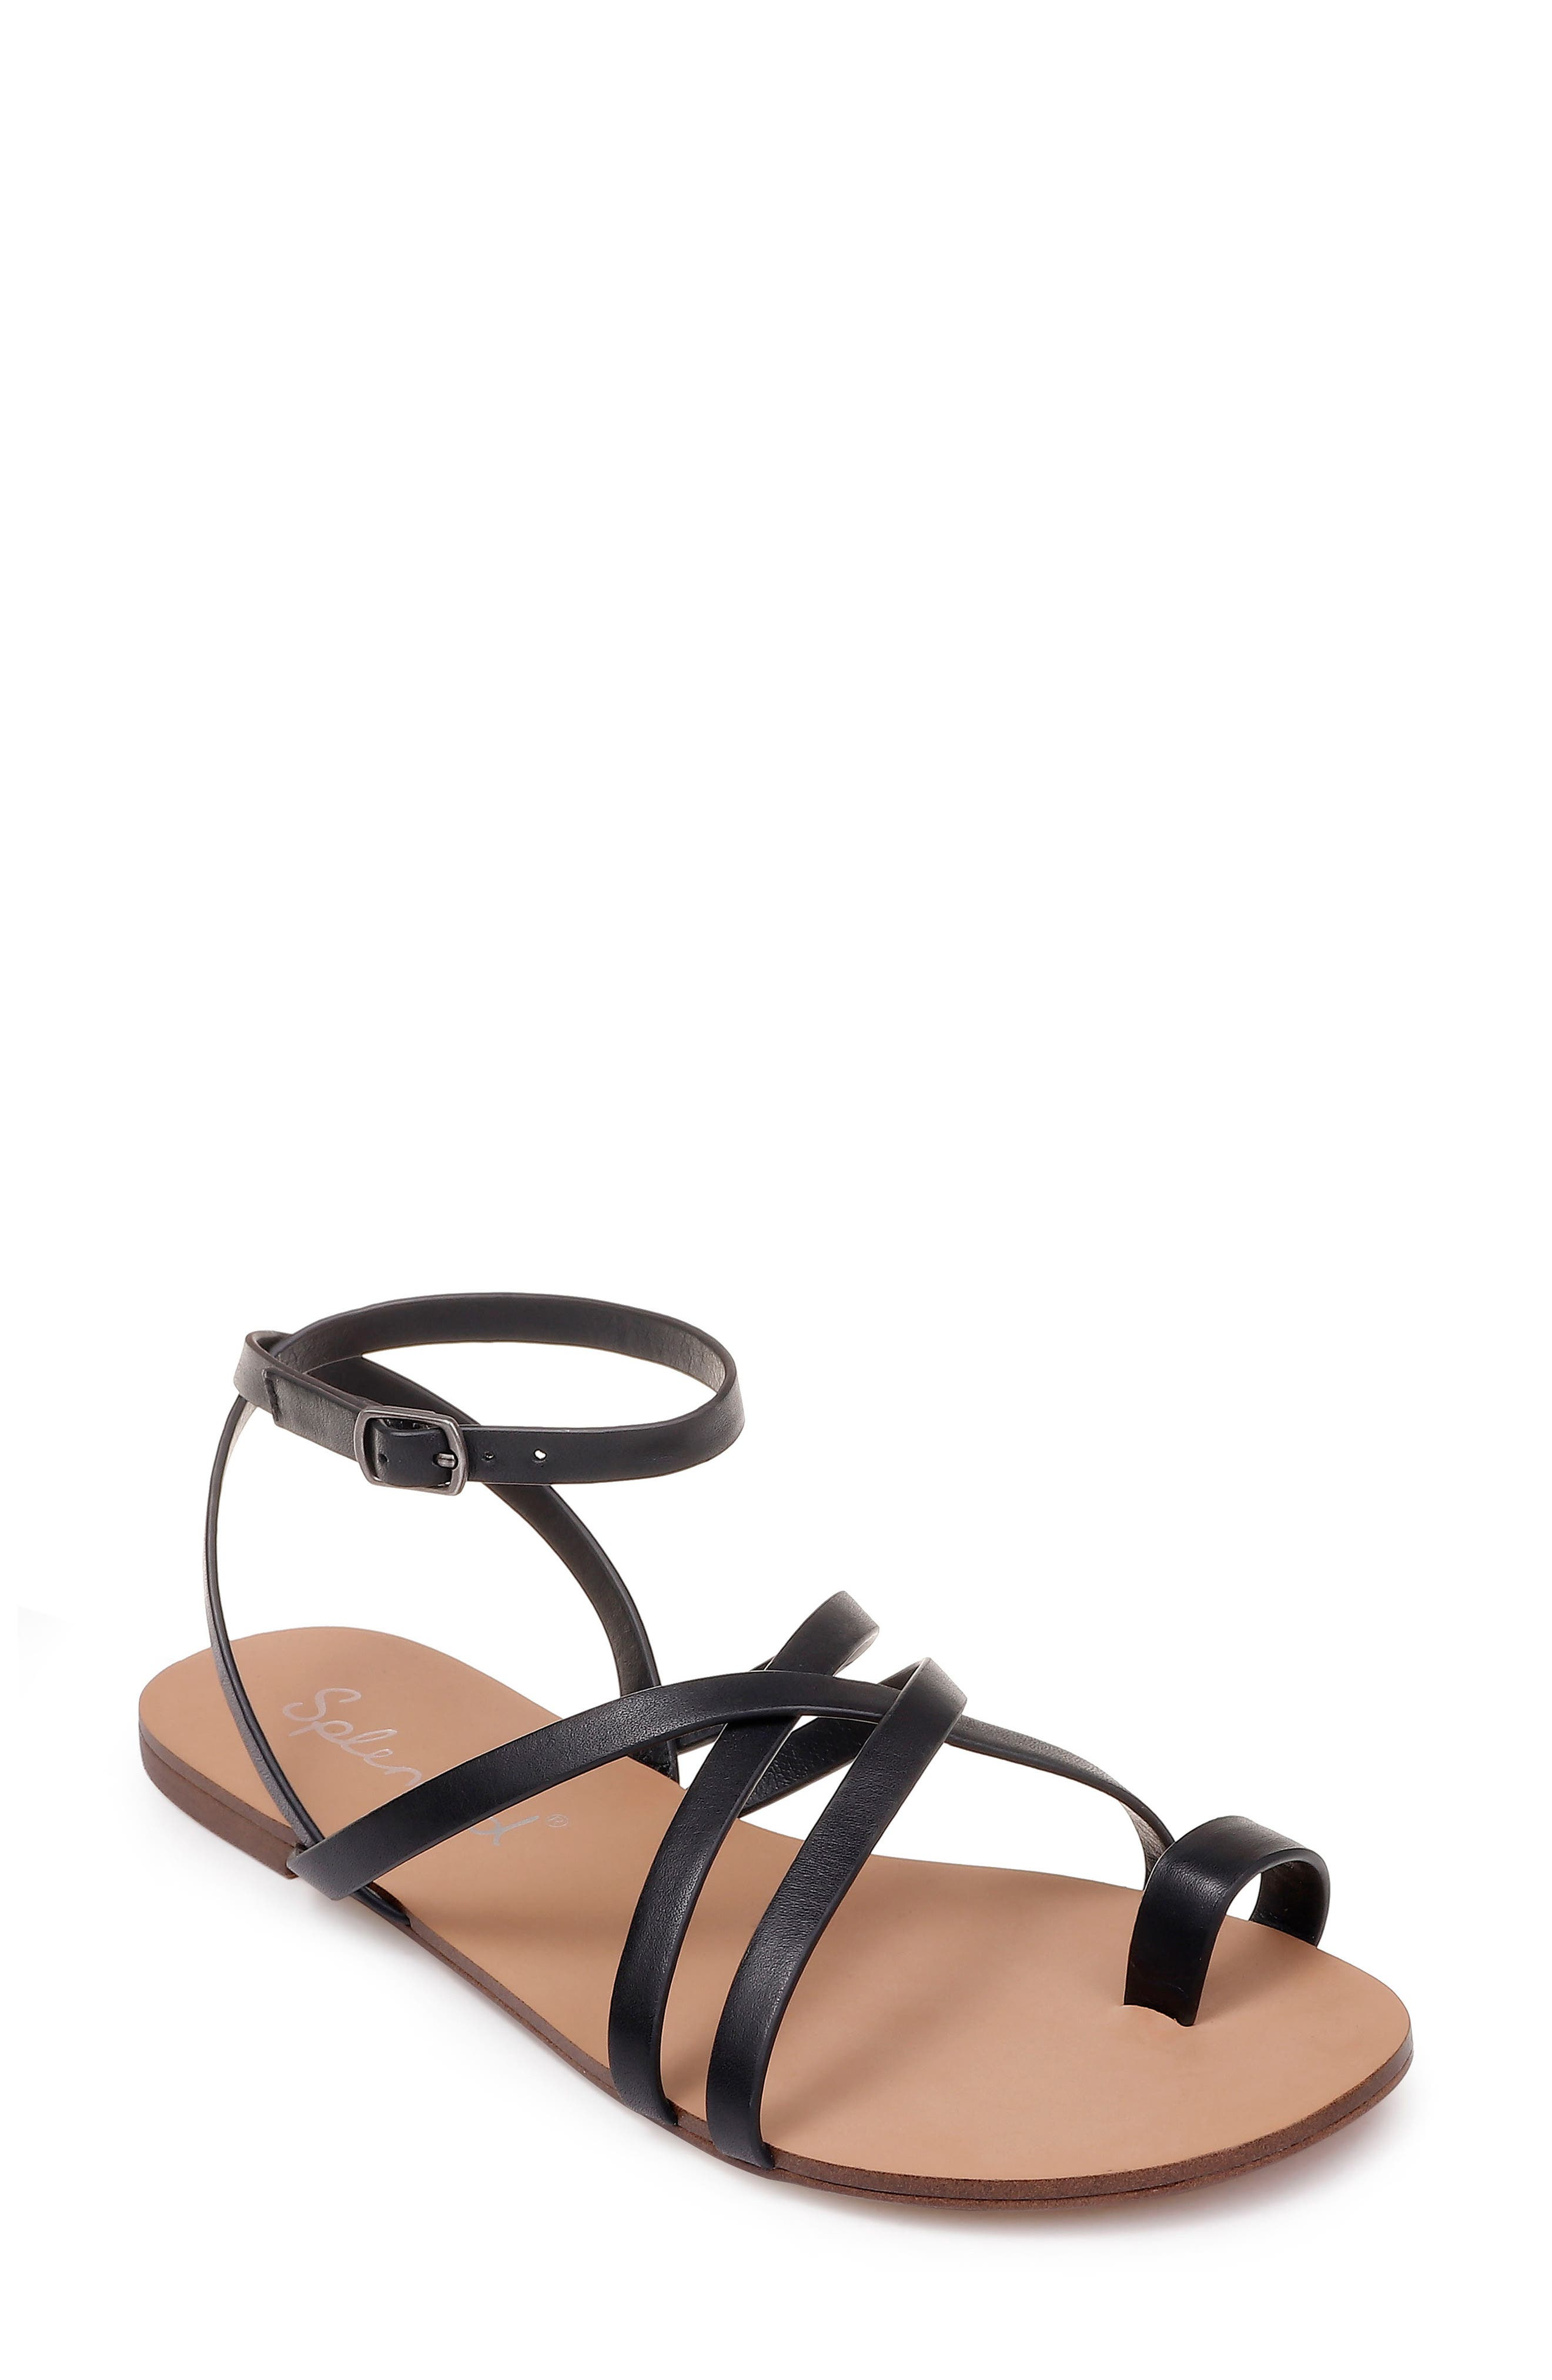 Sully Strappy Toe Loop Sandal,                             Main thumbnail 1, color,                             BLACK LEATHER